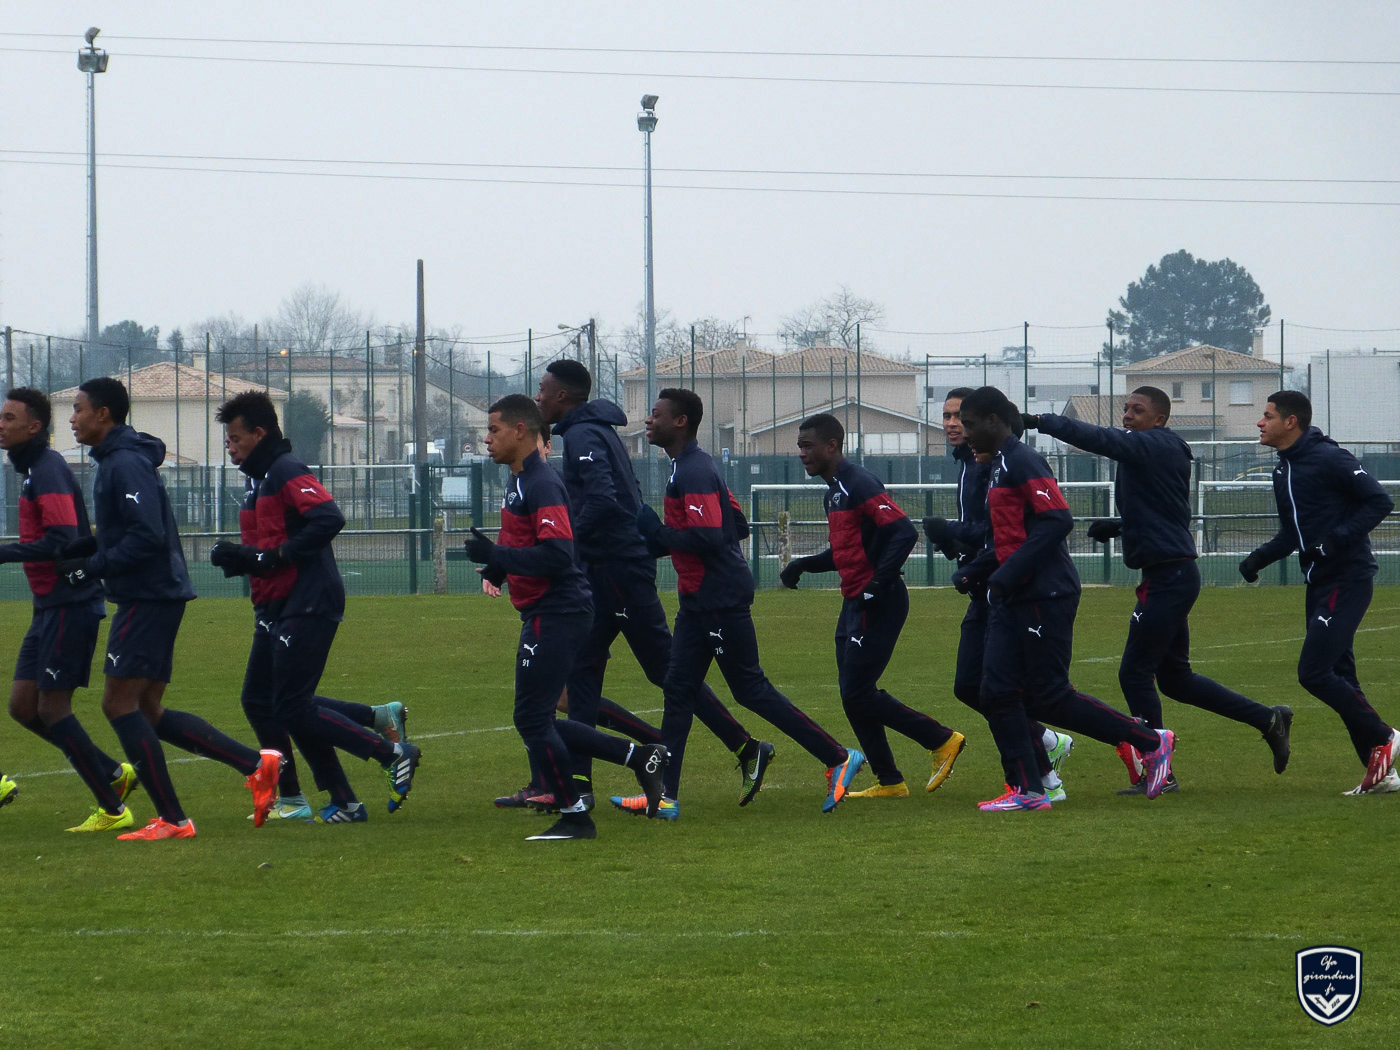 Cfa Girondins : U17 Nationaux : phases finales à venir - Formation Girondins